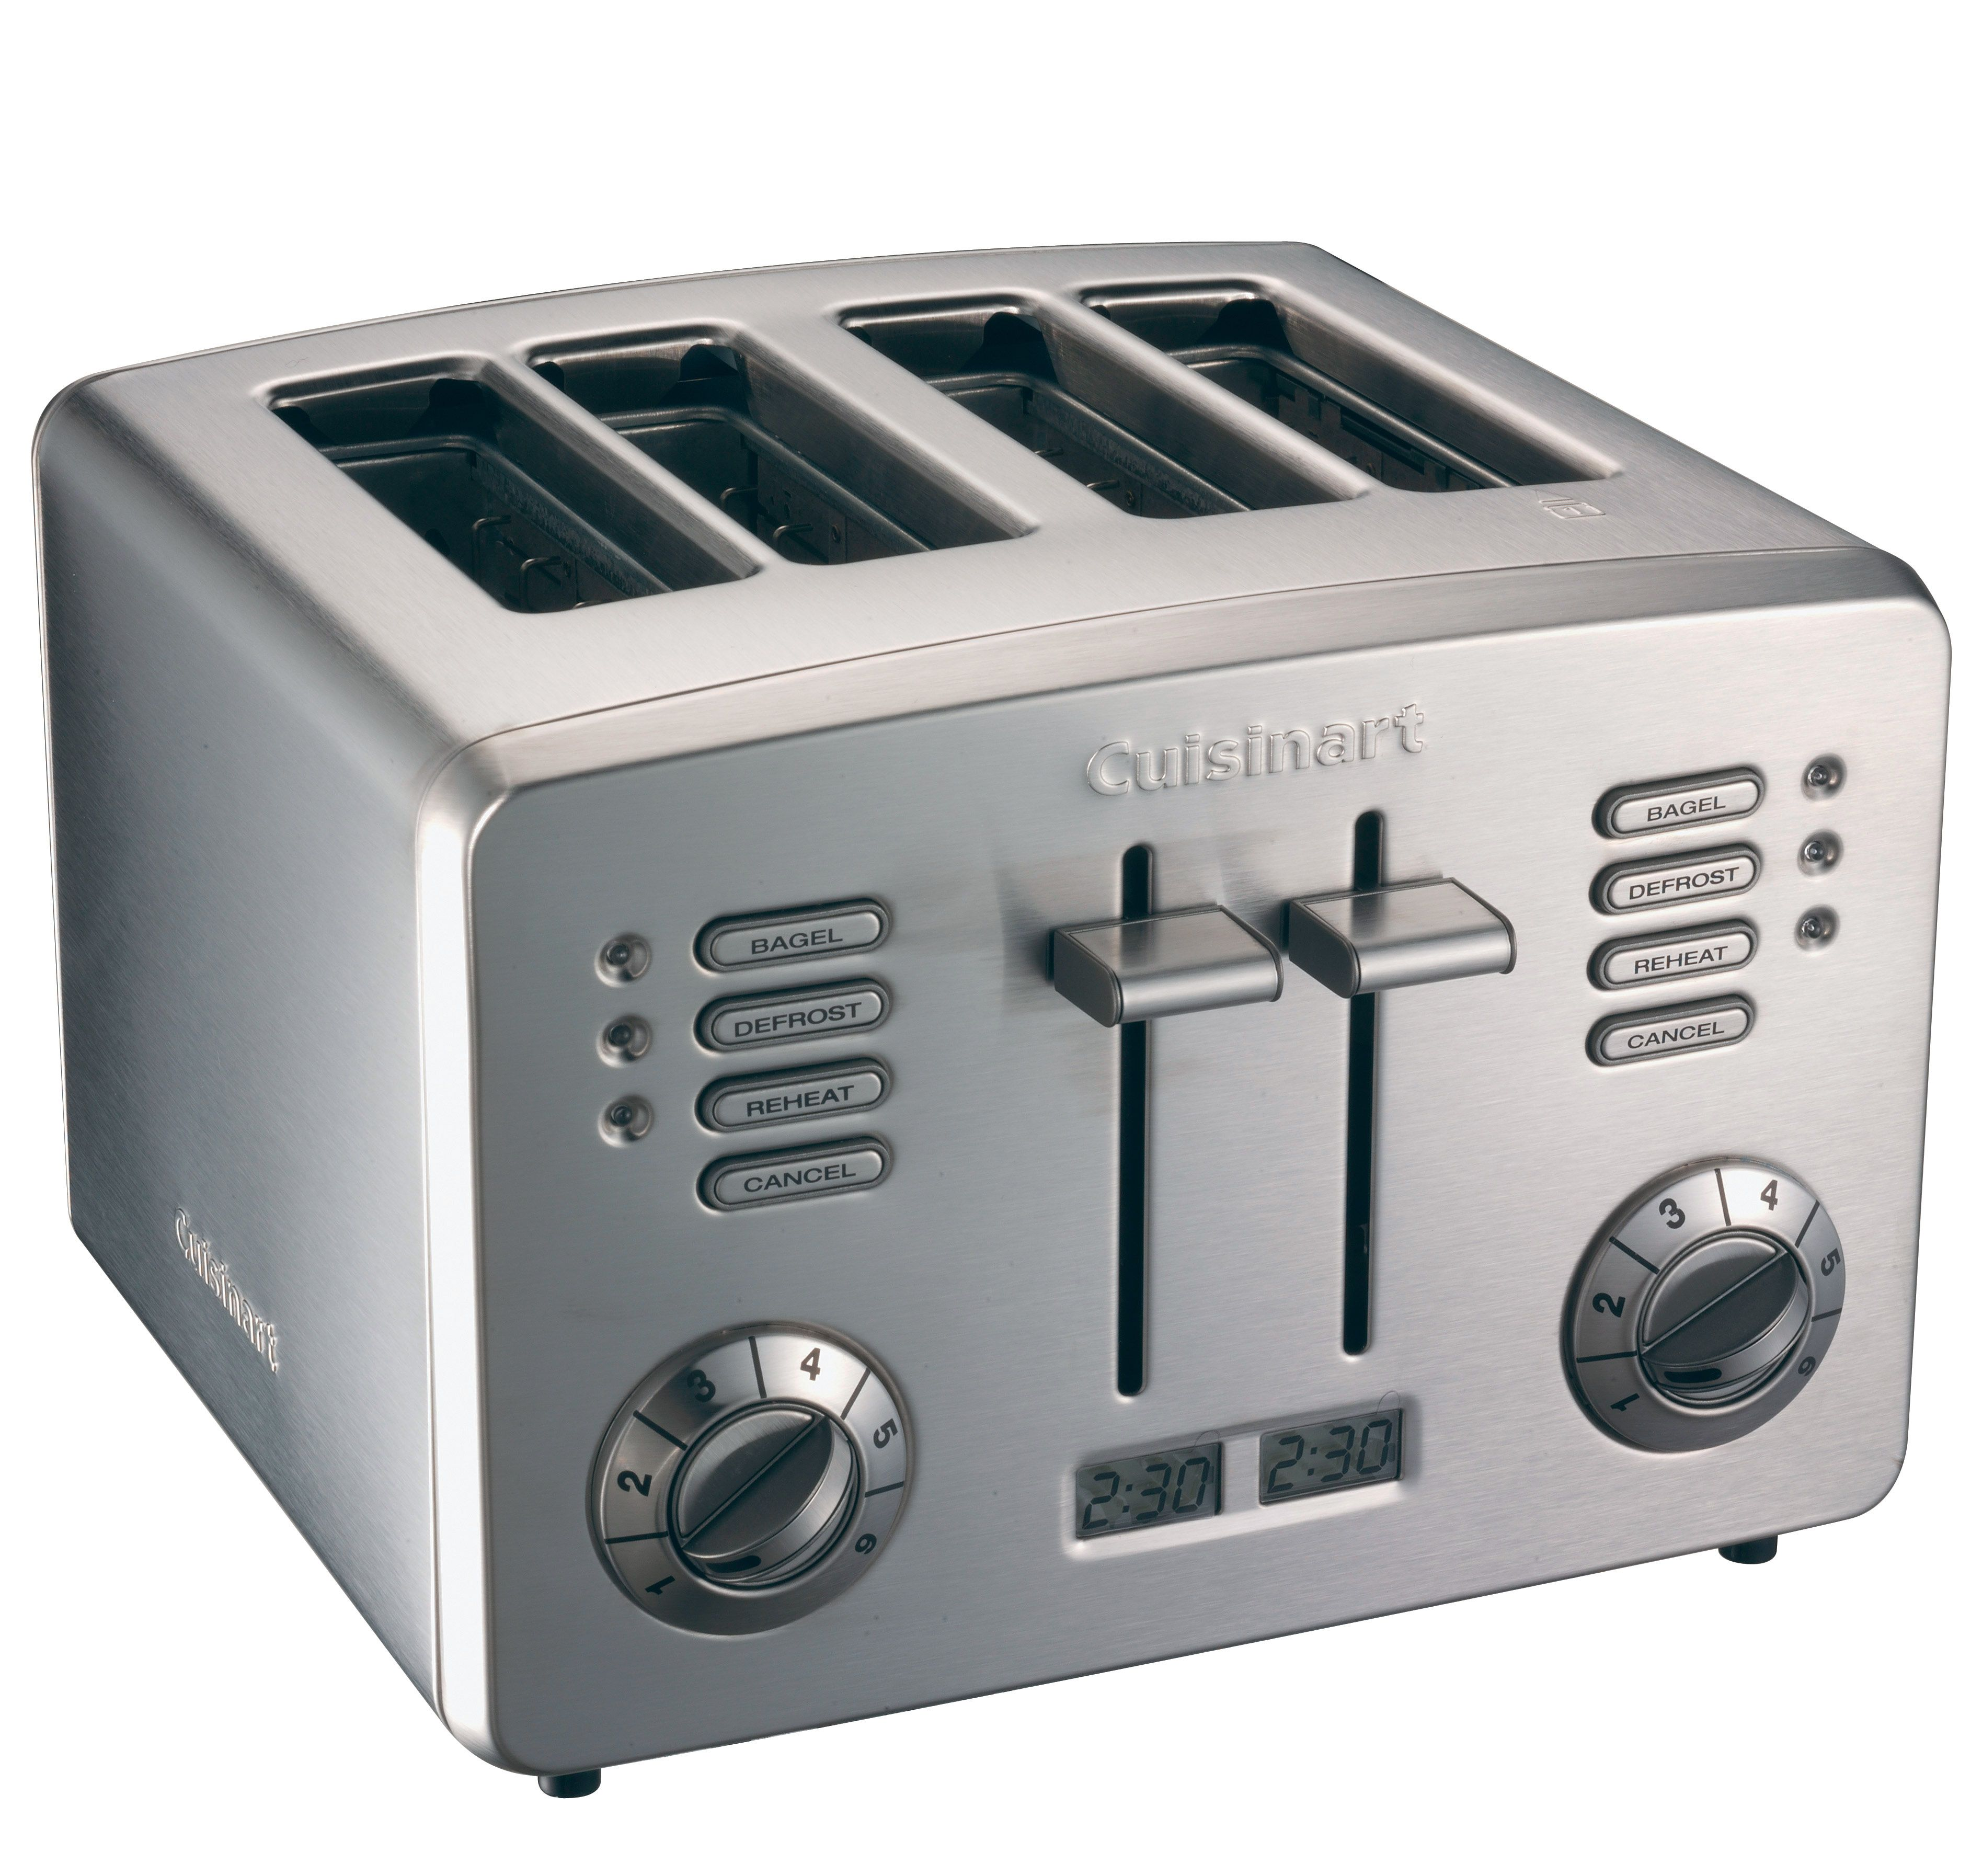 Conair Cuisinart Cpt190 Stainless Steel Toaster Review